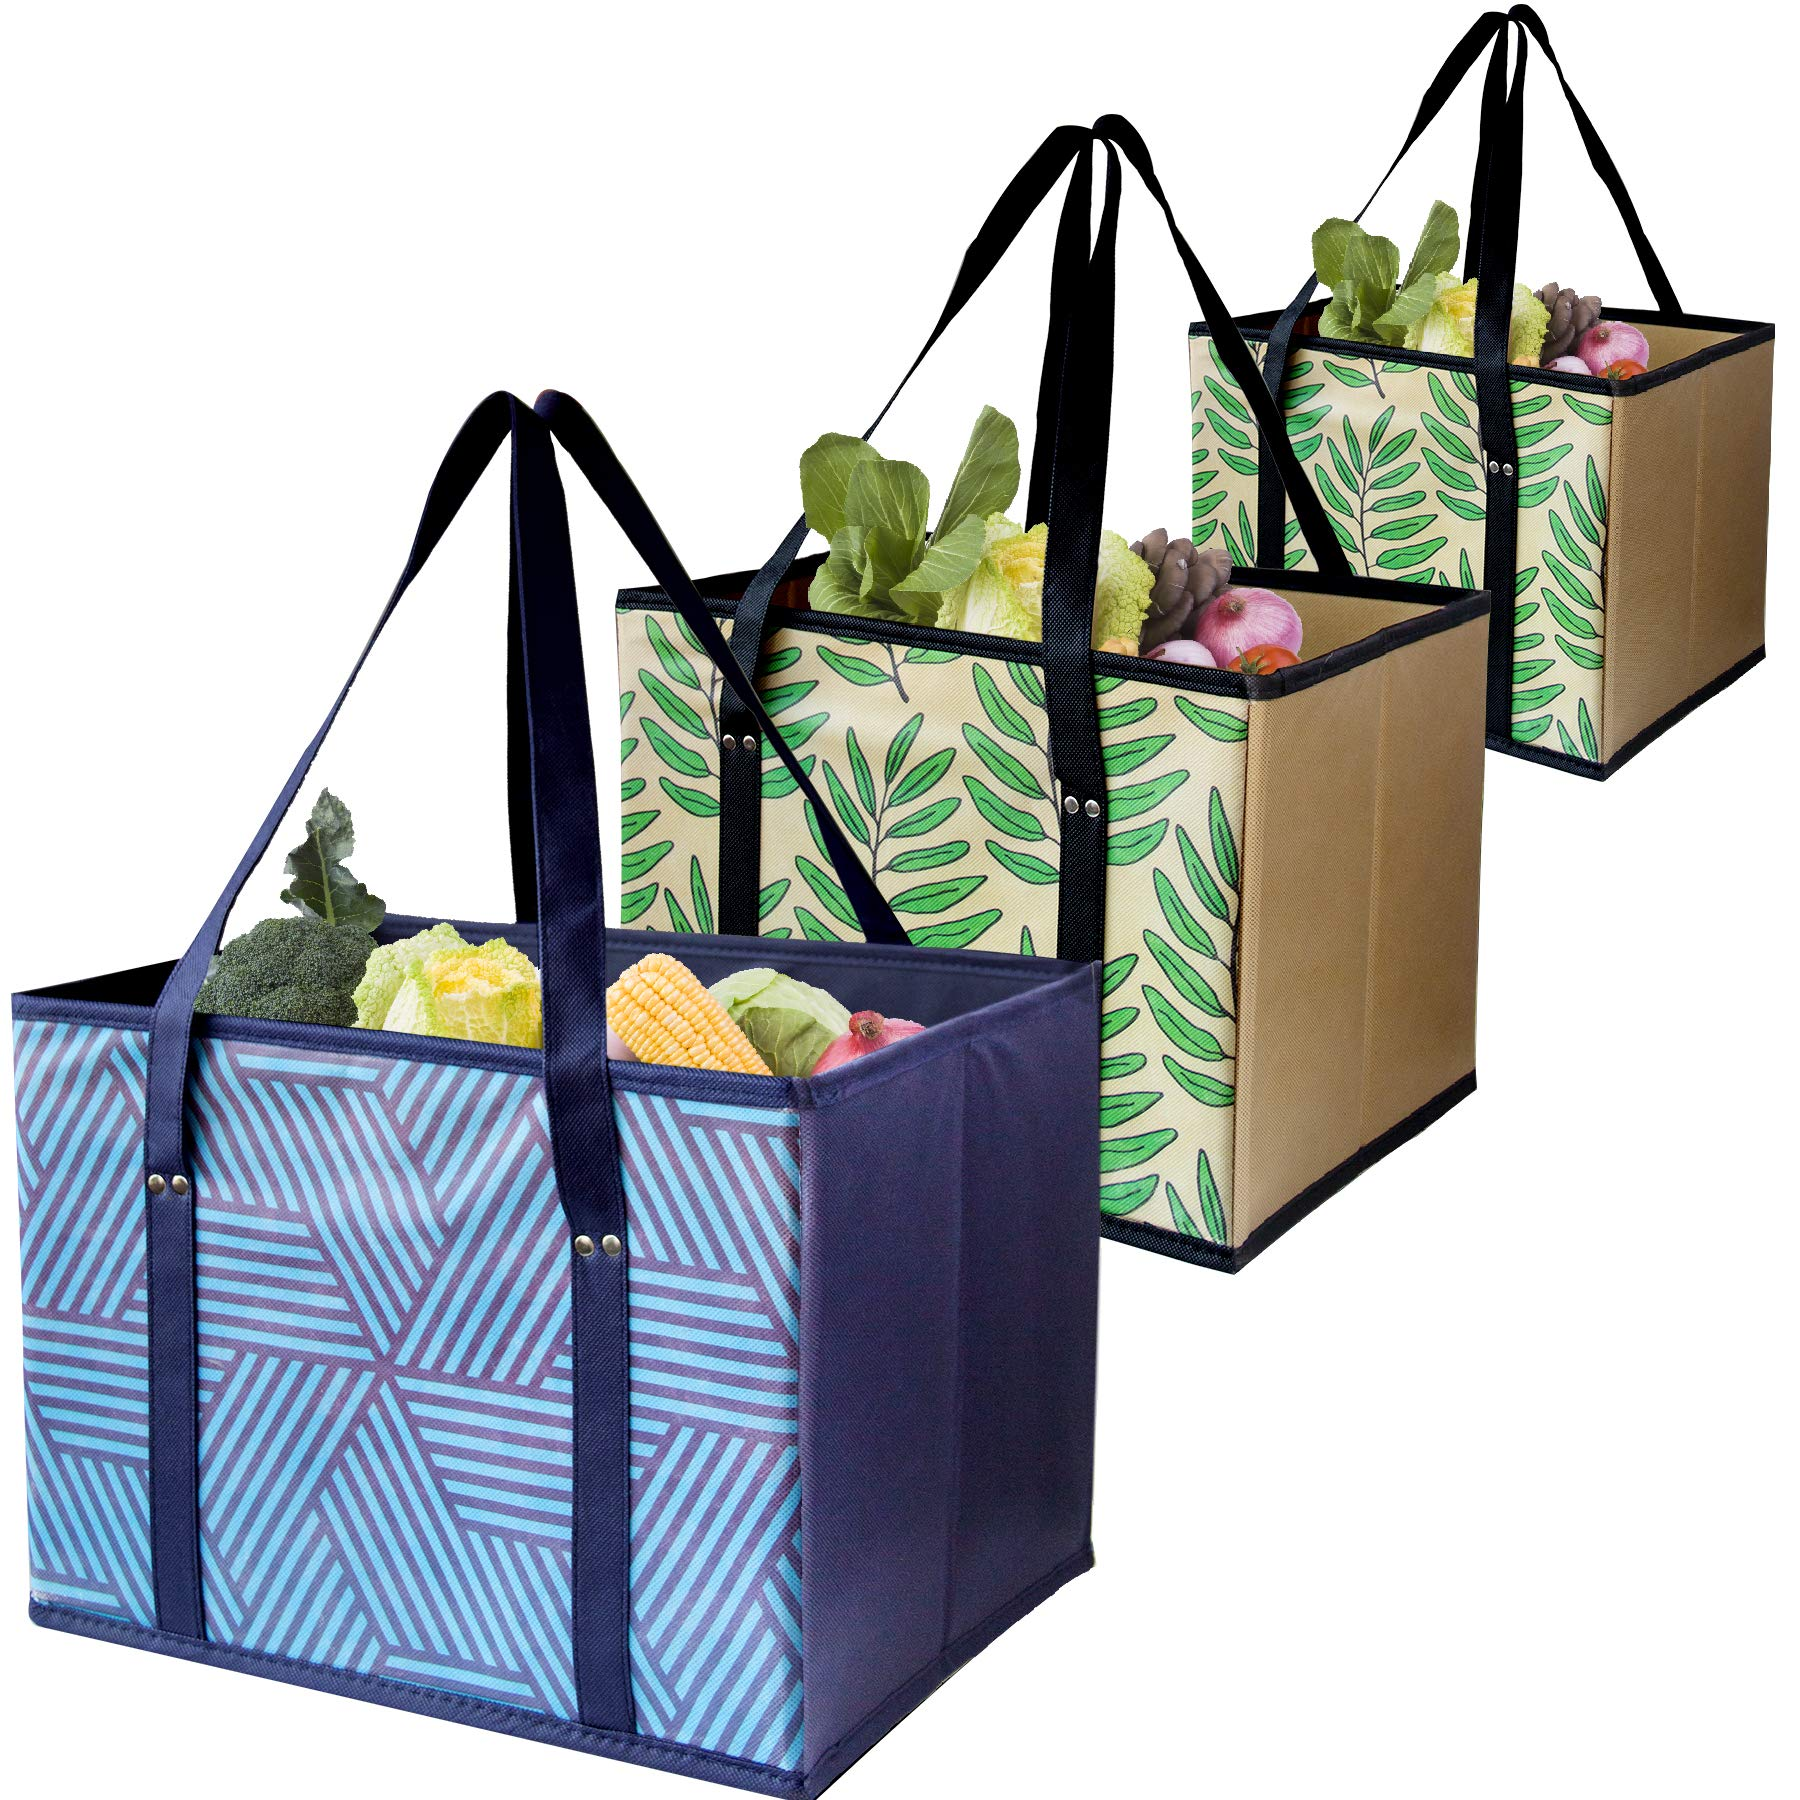 Reusable Shopping Box Grocery Bag,Shopping Tote Bag with Extra Long Handles,Eco-Friendly, Large, Durable, Foldable with Reinforced Sides and Bottoms- Set of 3 (Blue+Navy Beige)